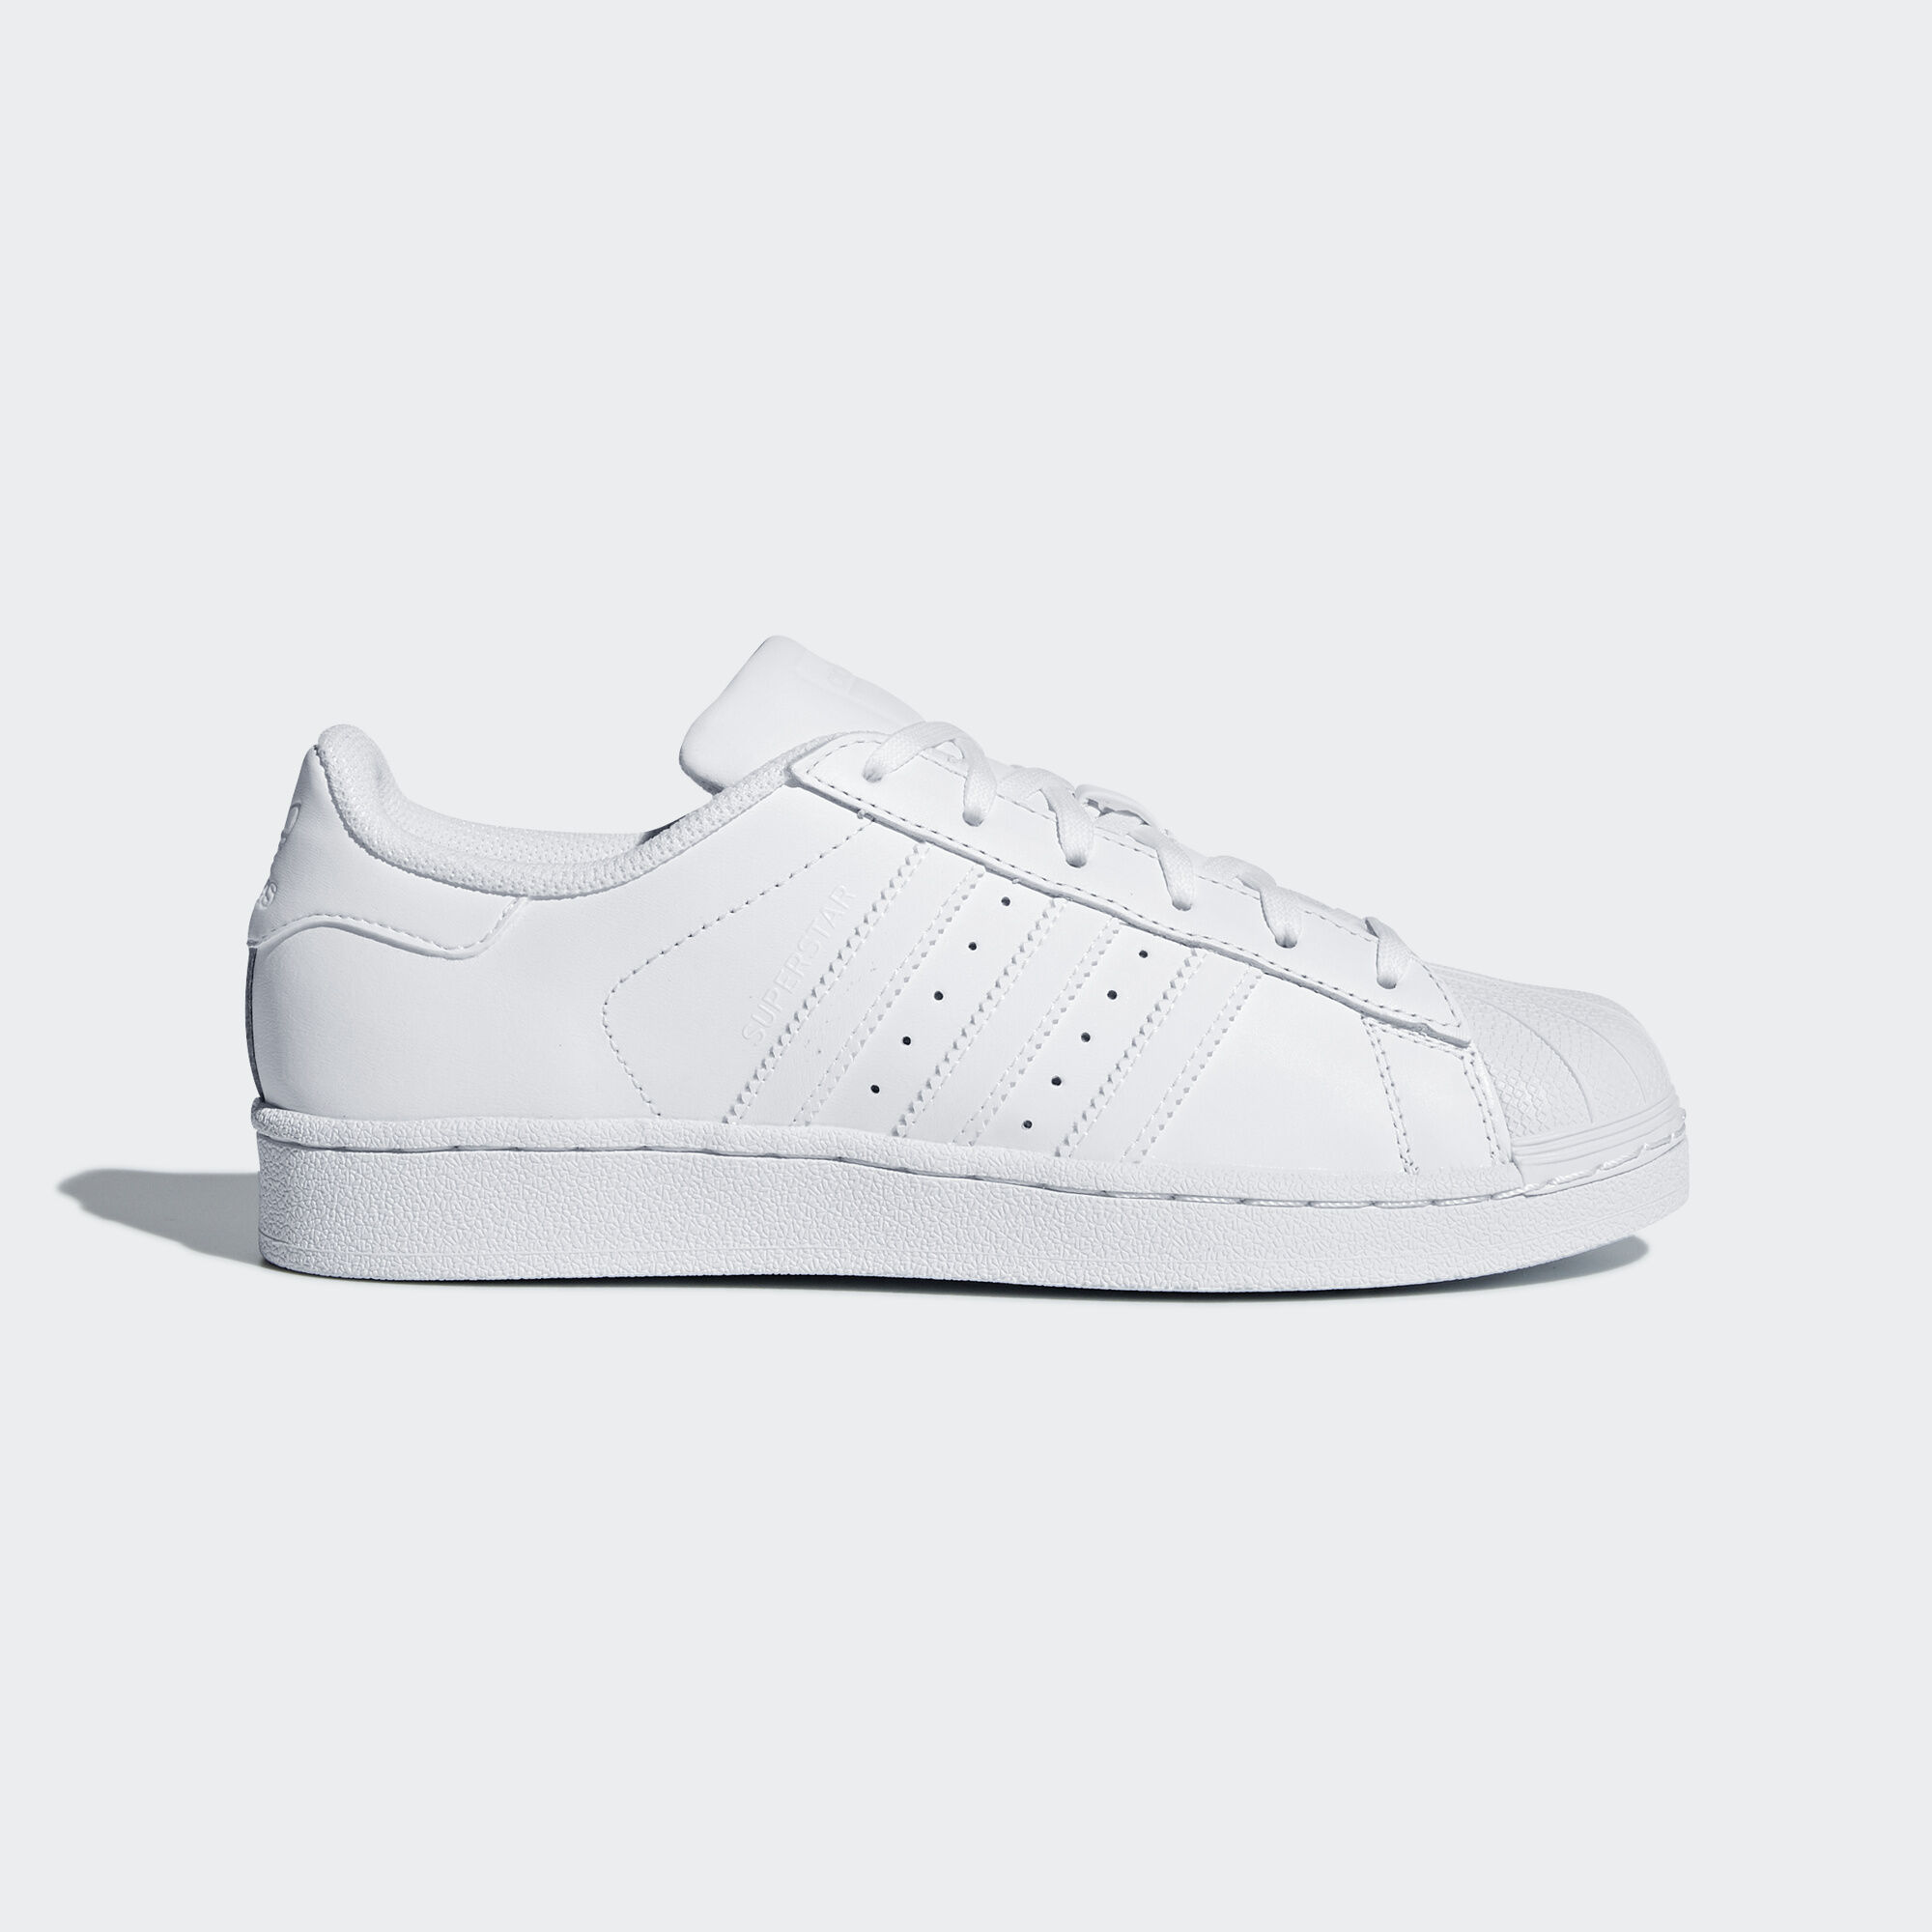 image: adidas superstar [28]